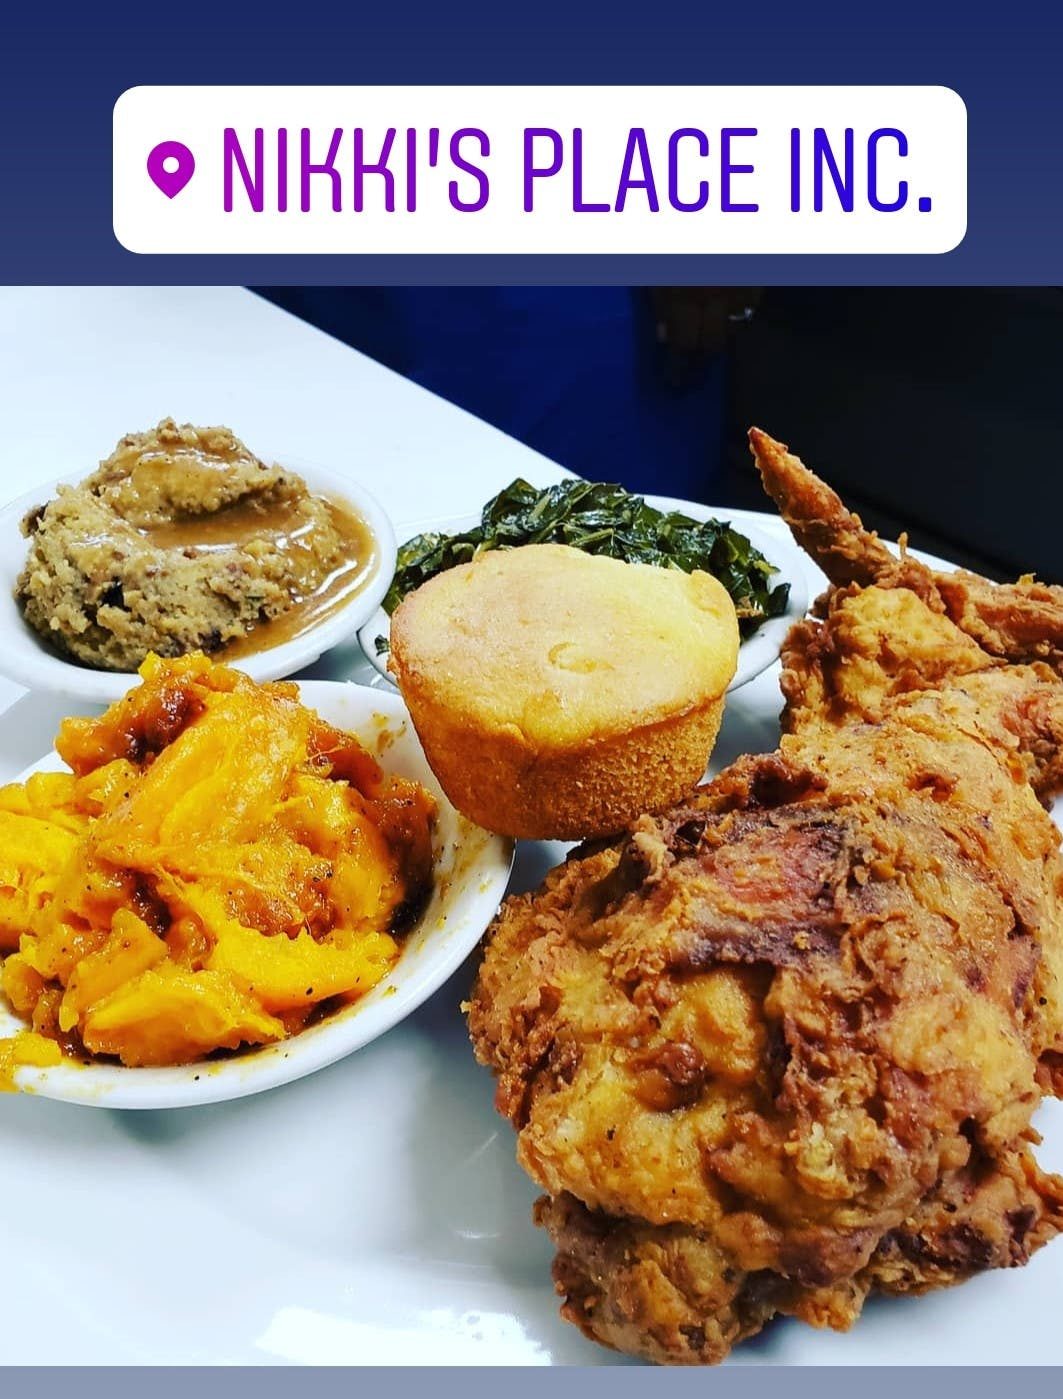 Nikkis Place Inc. | Southern Inspired Cuisine in Orlando, FL